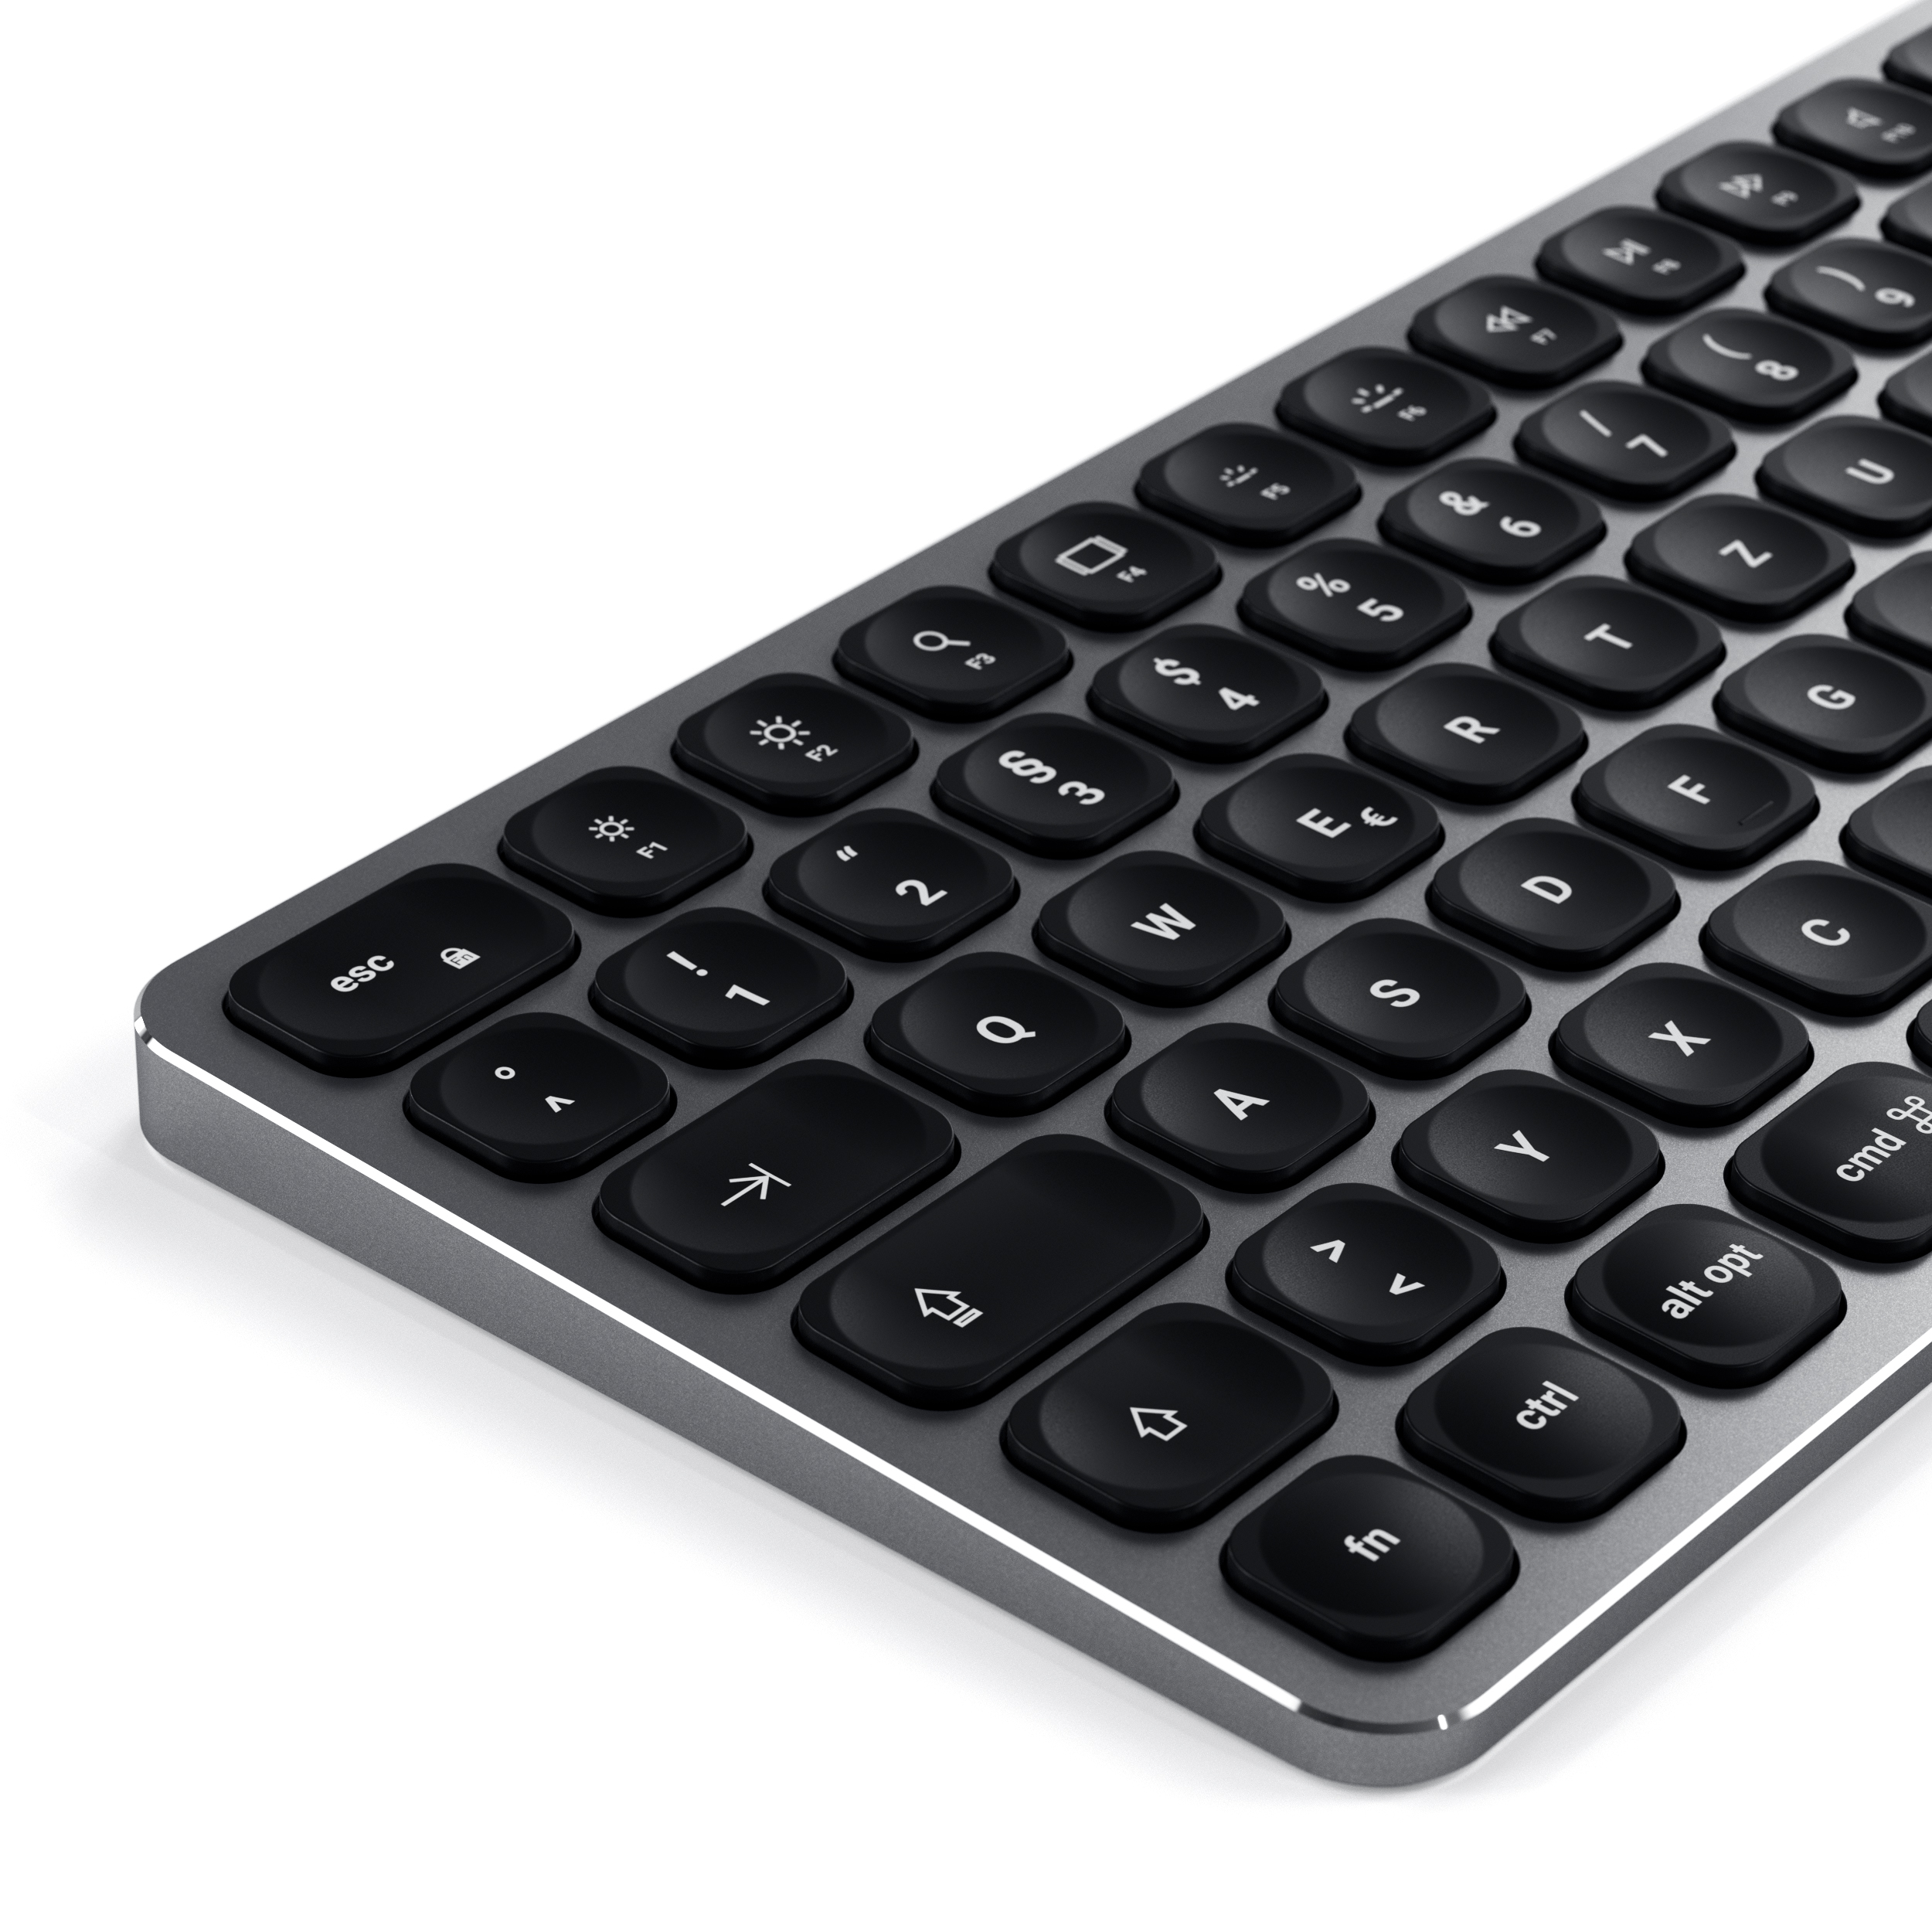 521880_Satechi-Aluminum-BT-Backlit-Keyboard-Slim-German-space-gray_12-1